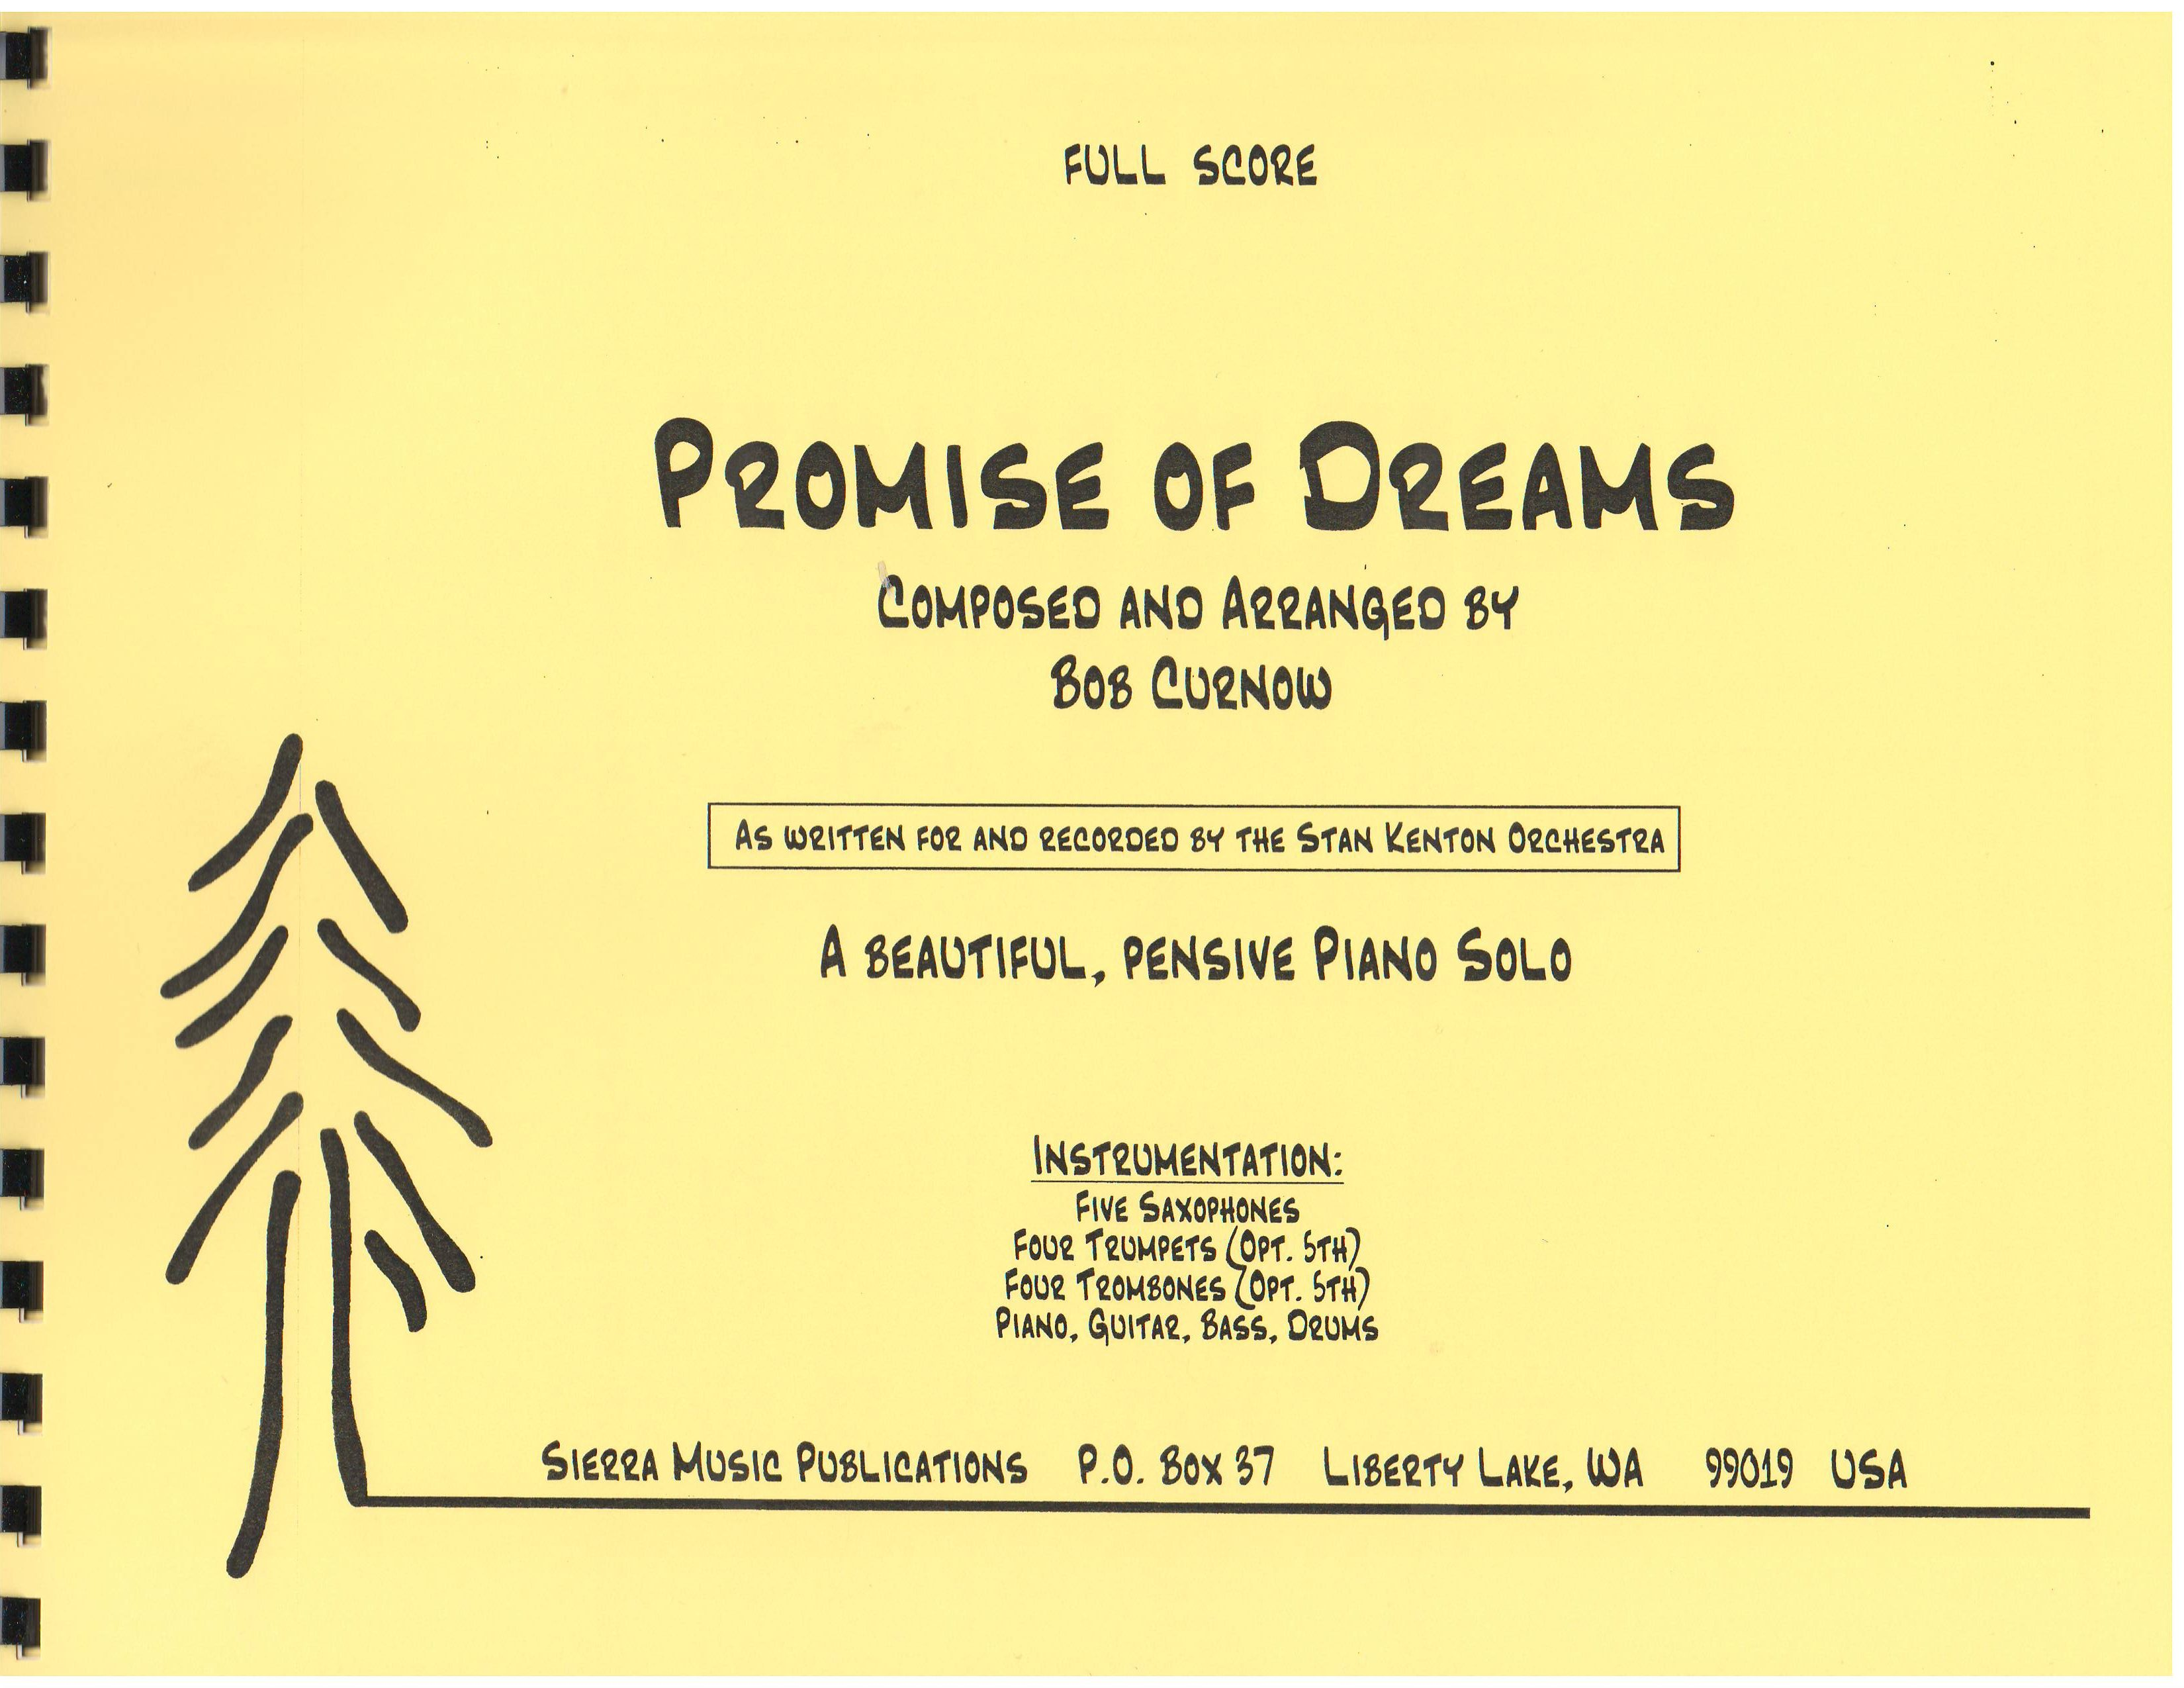 PROMISE OF DREAMS - By Composer / Performer, Curnow, Bob